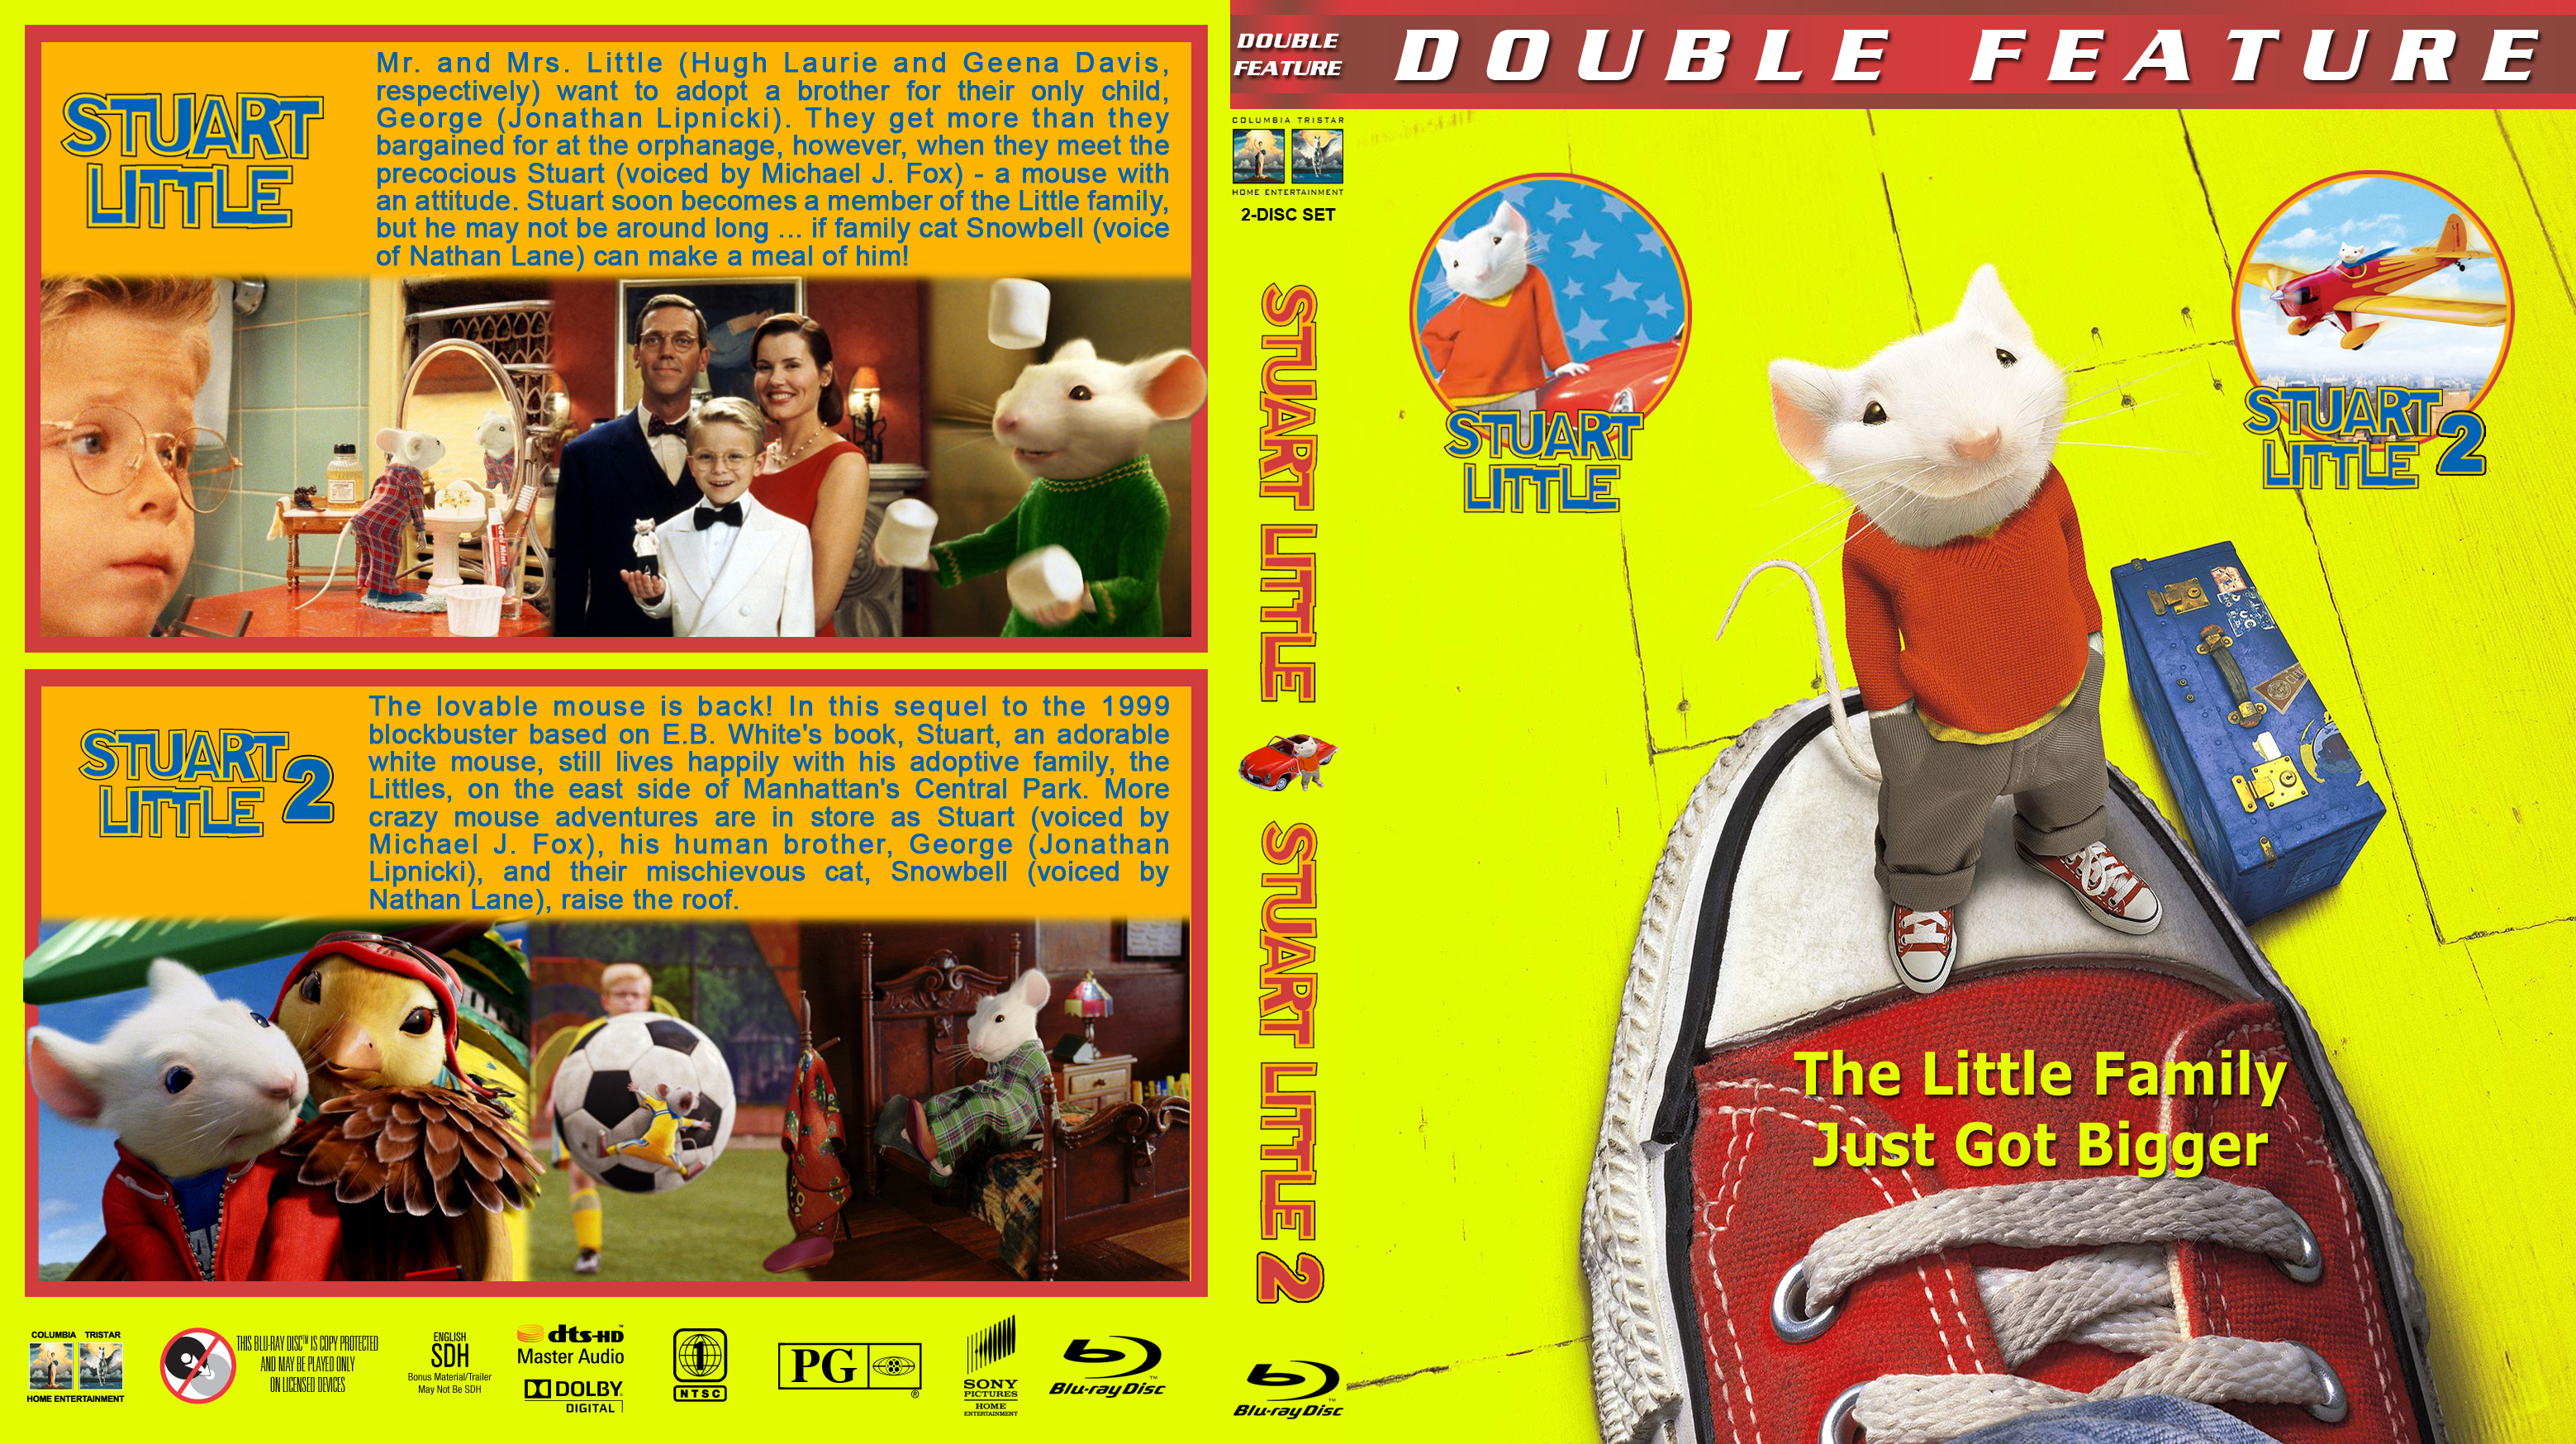 Stuart Little Double Br Dvd Covers Cover Century Over 500 000 Album Art Covers For Free